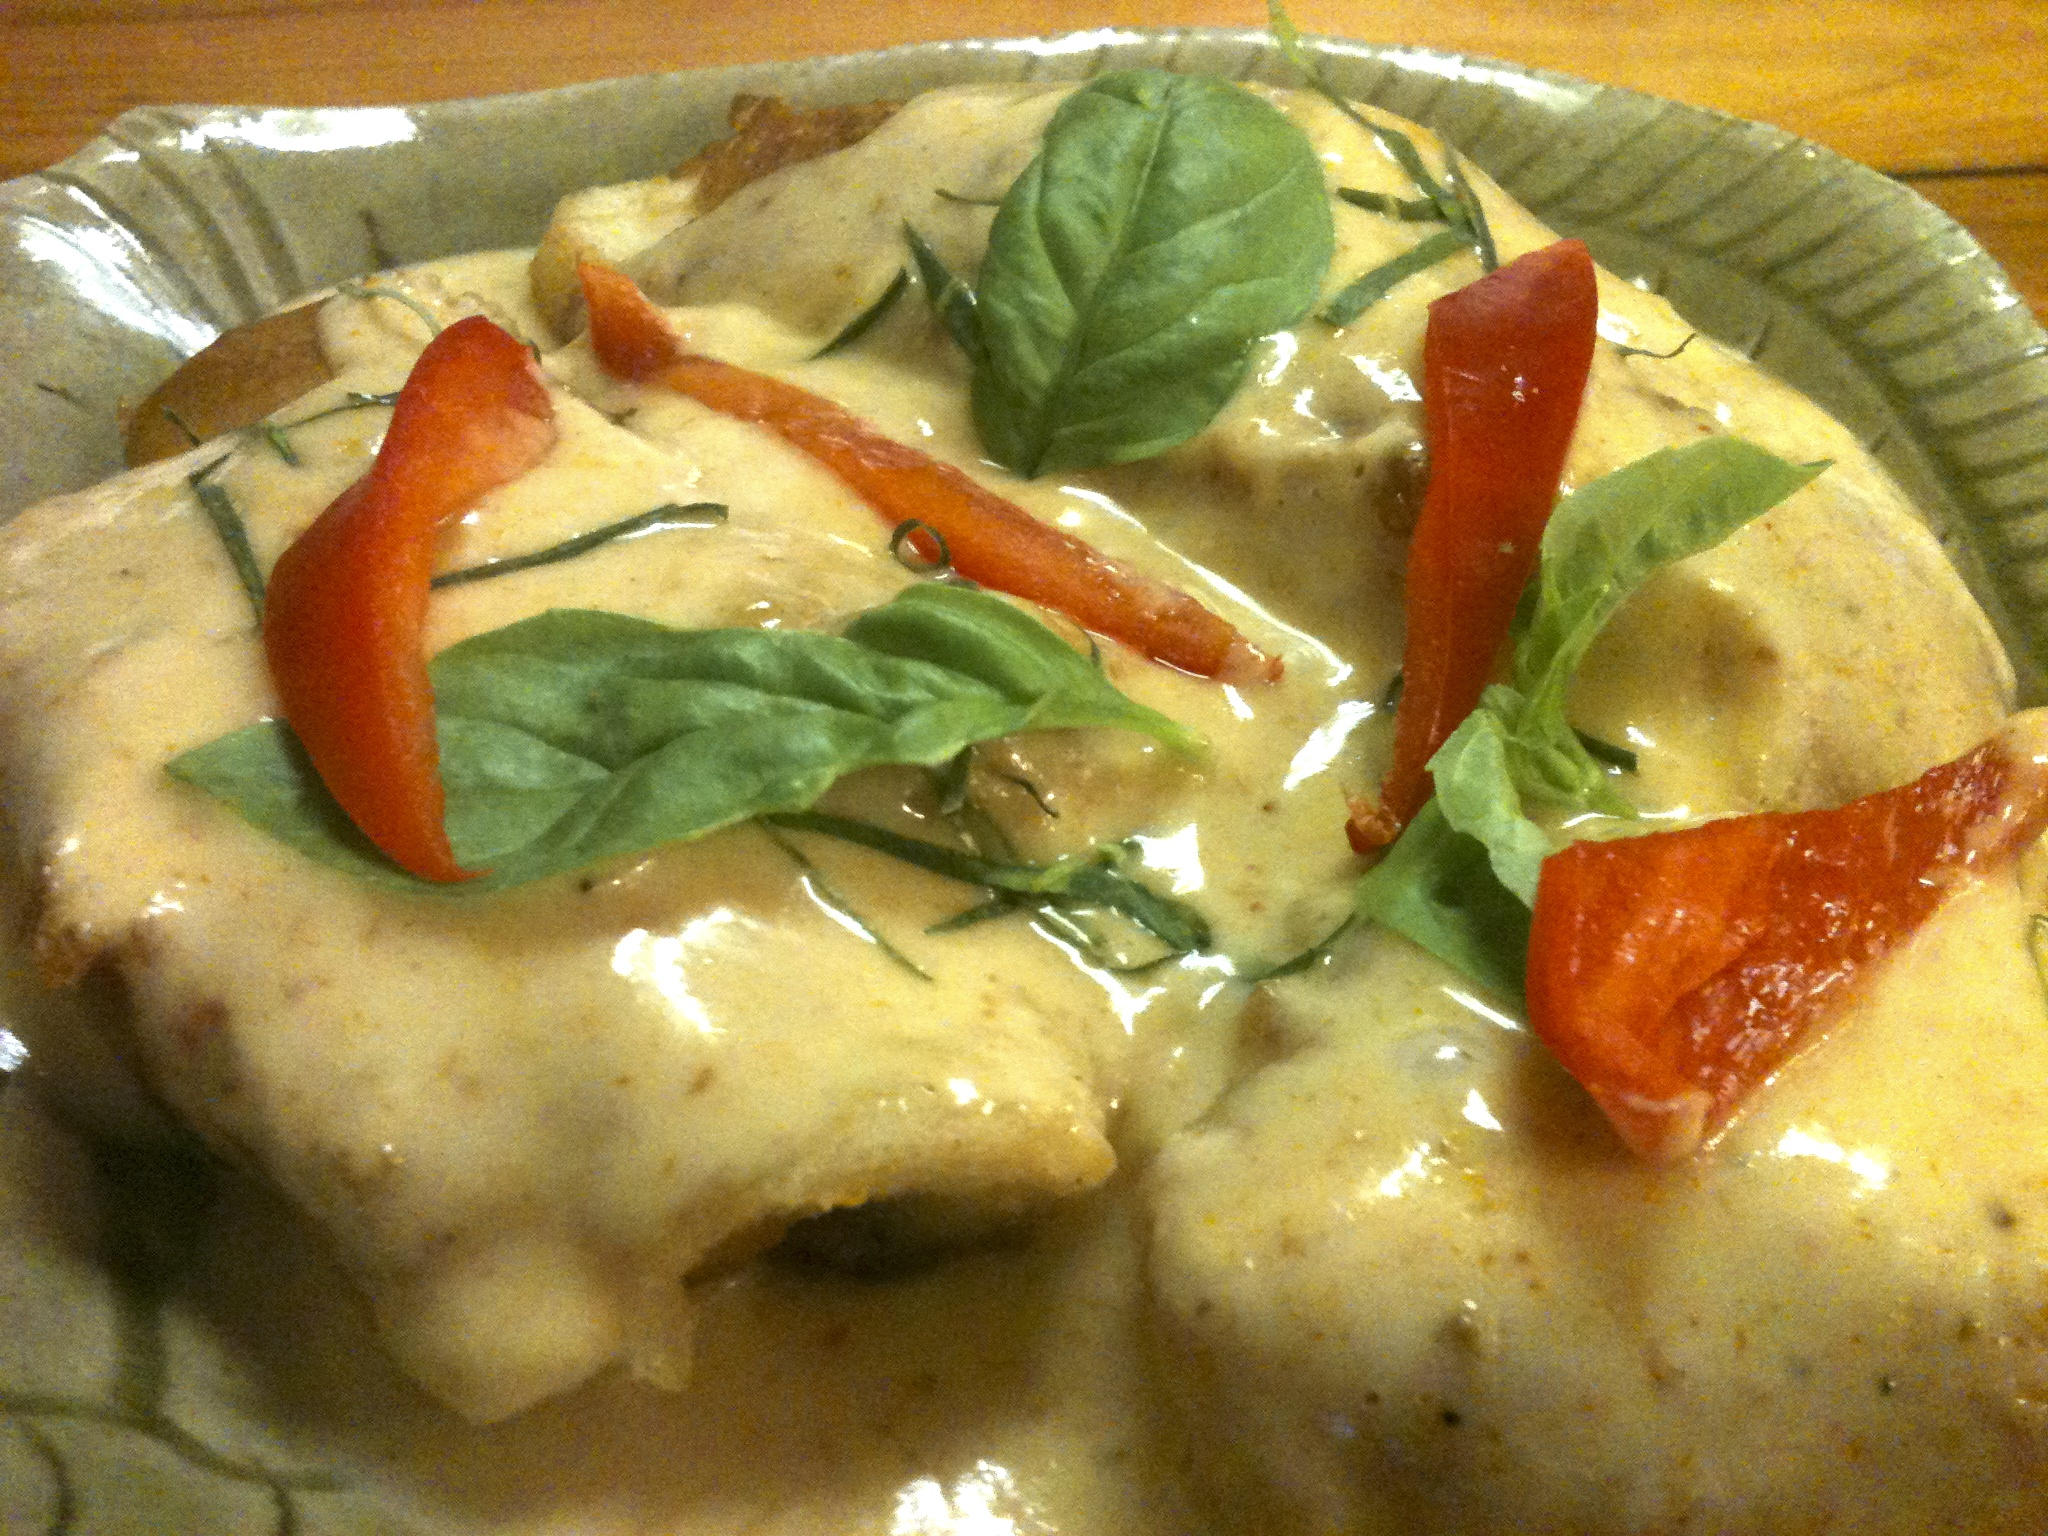 Pla Rad Prick - Battered Halibut topped with red curry sauce.